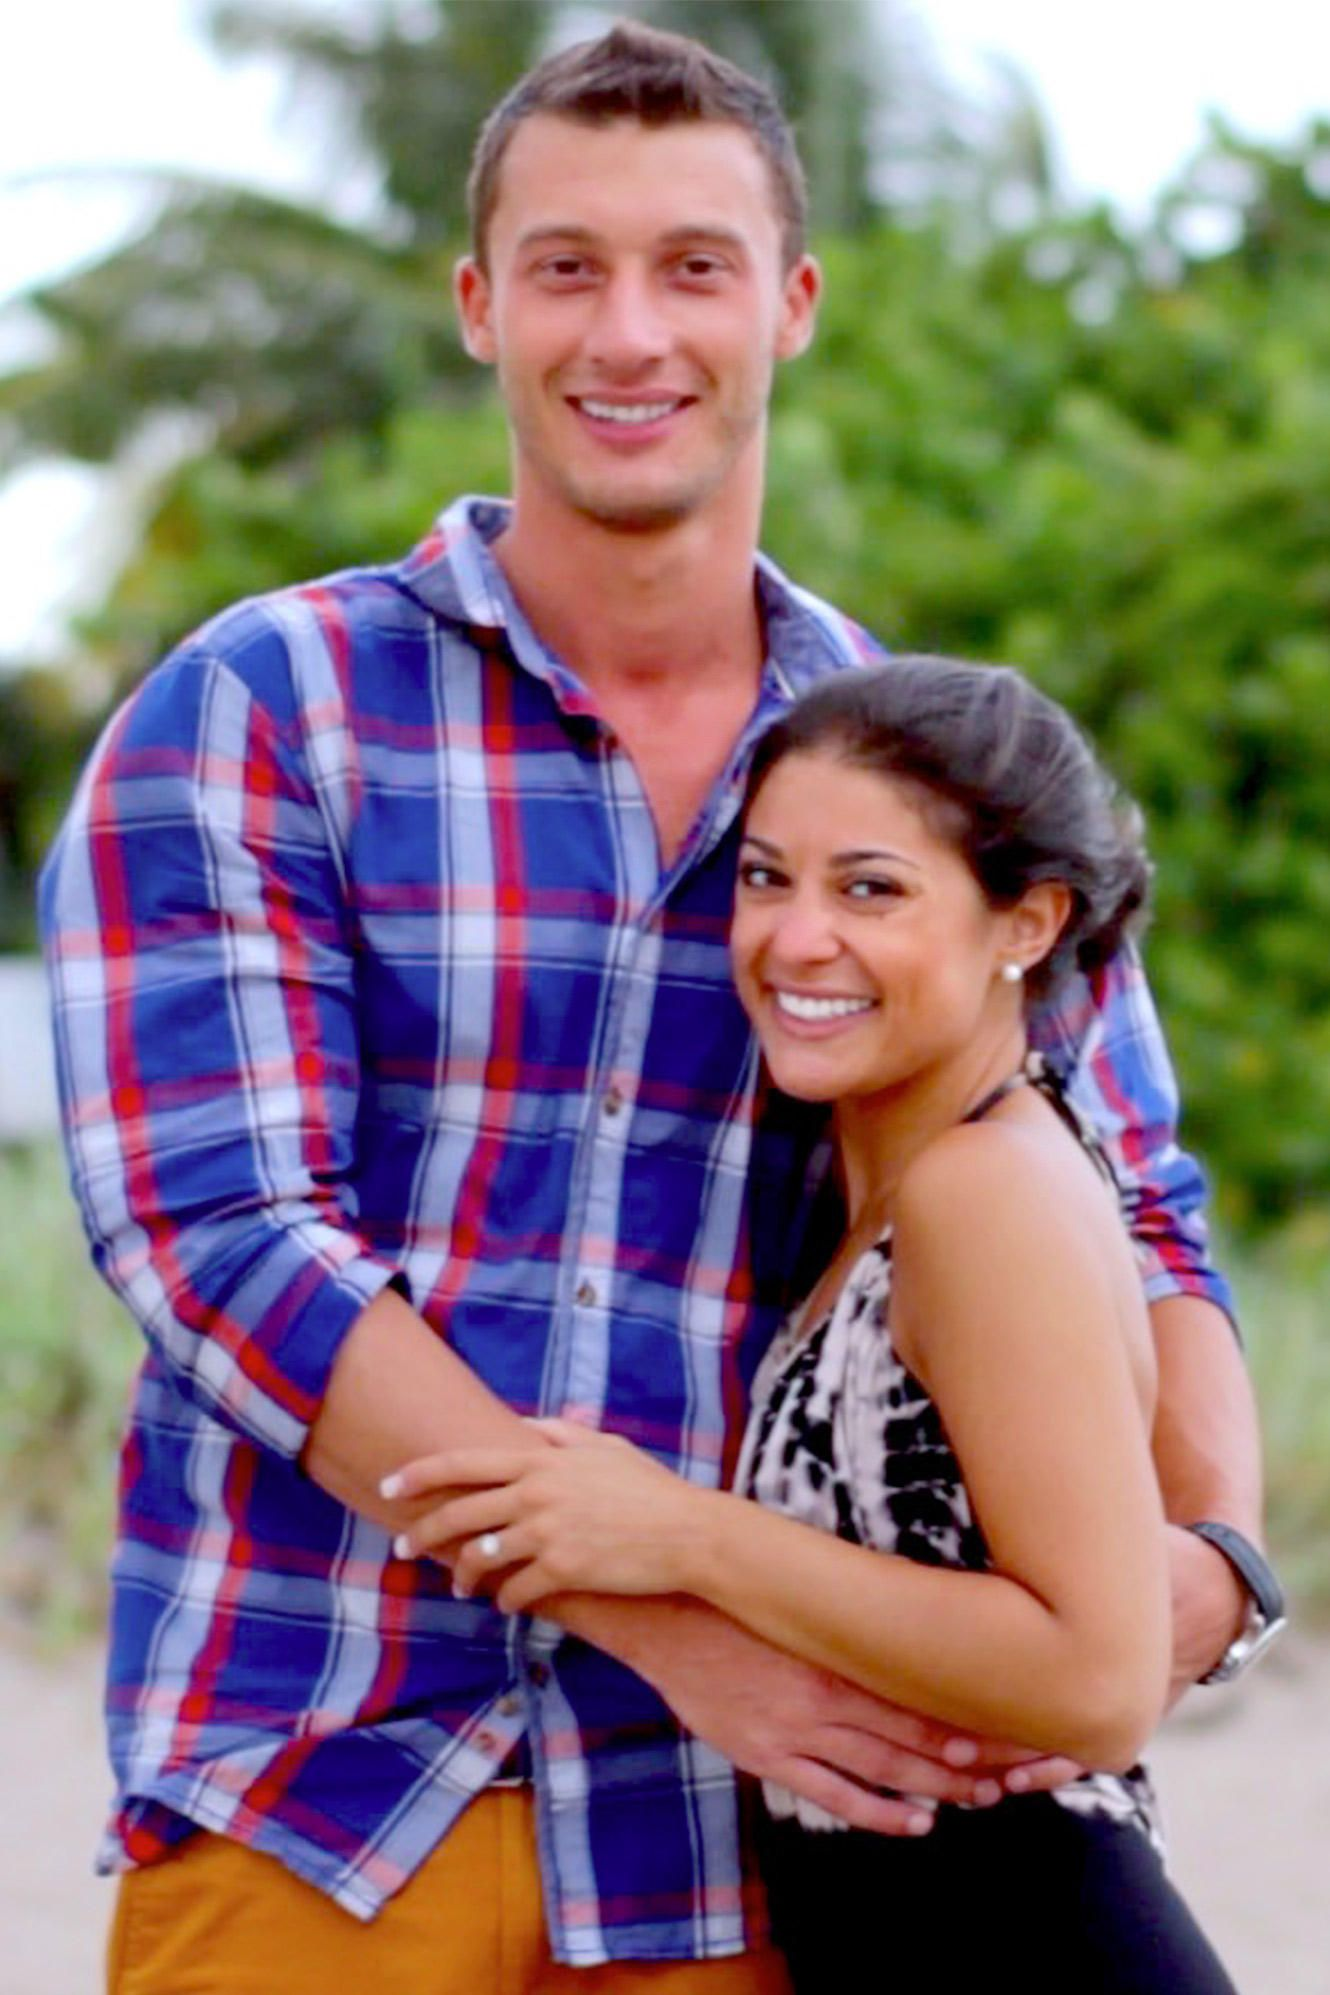 Tlc Official Site 90 Day Fiance 90 Day Fiance Cast Love Story